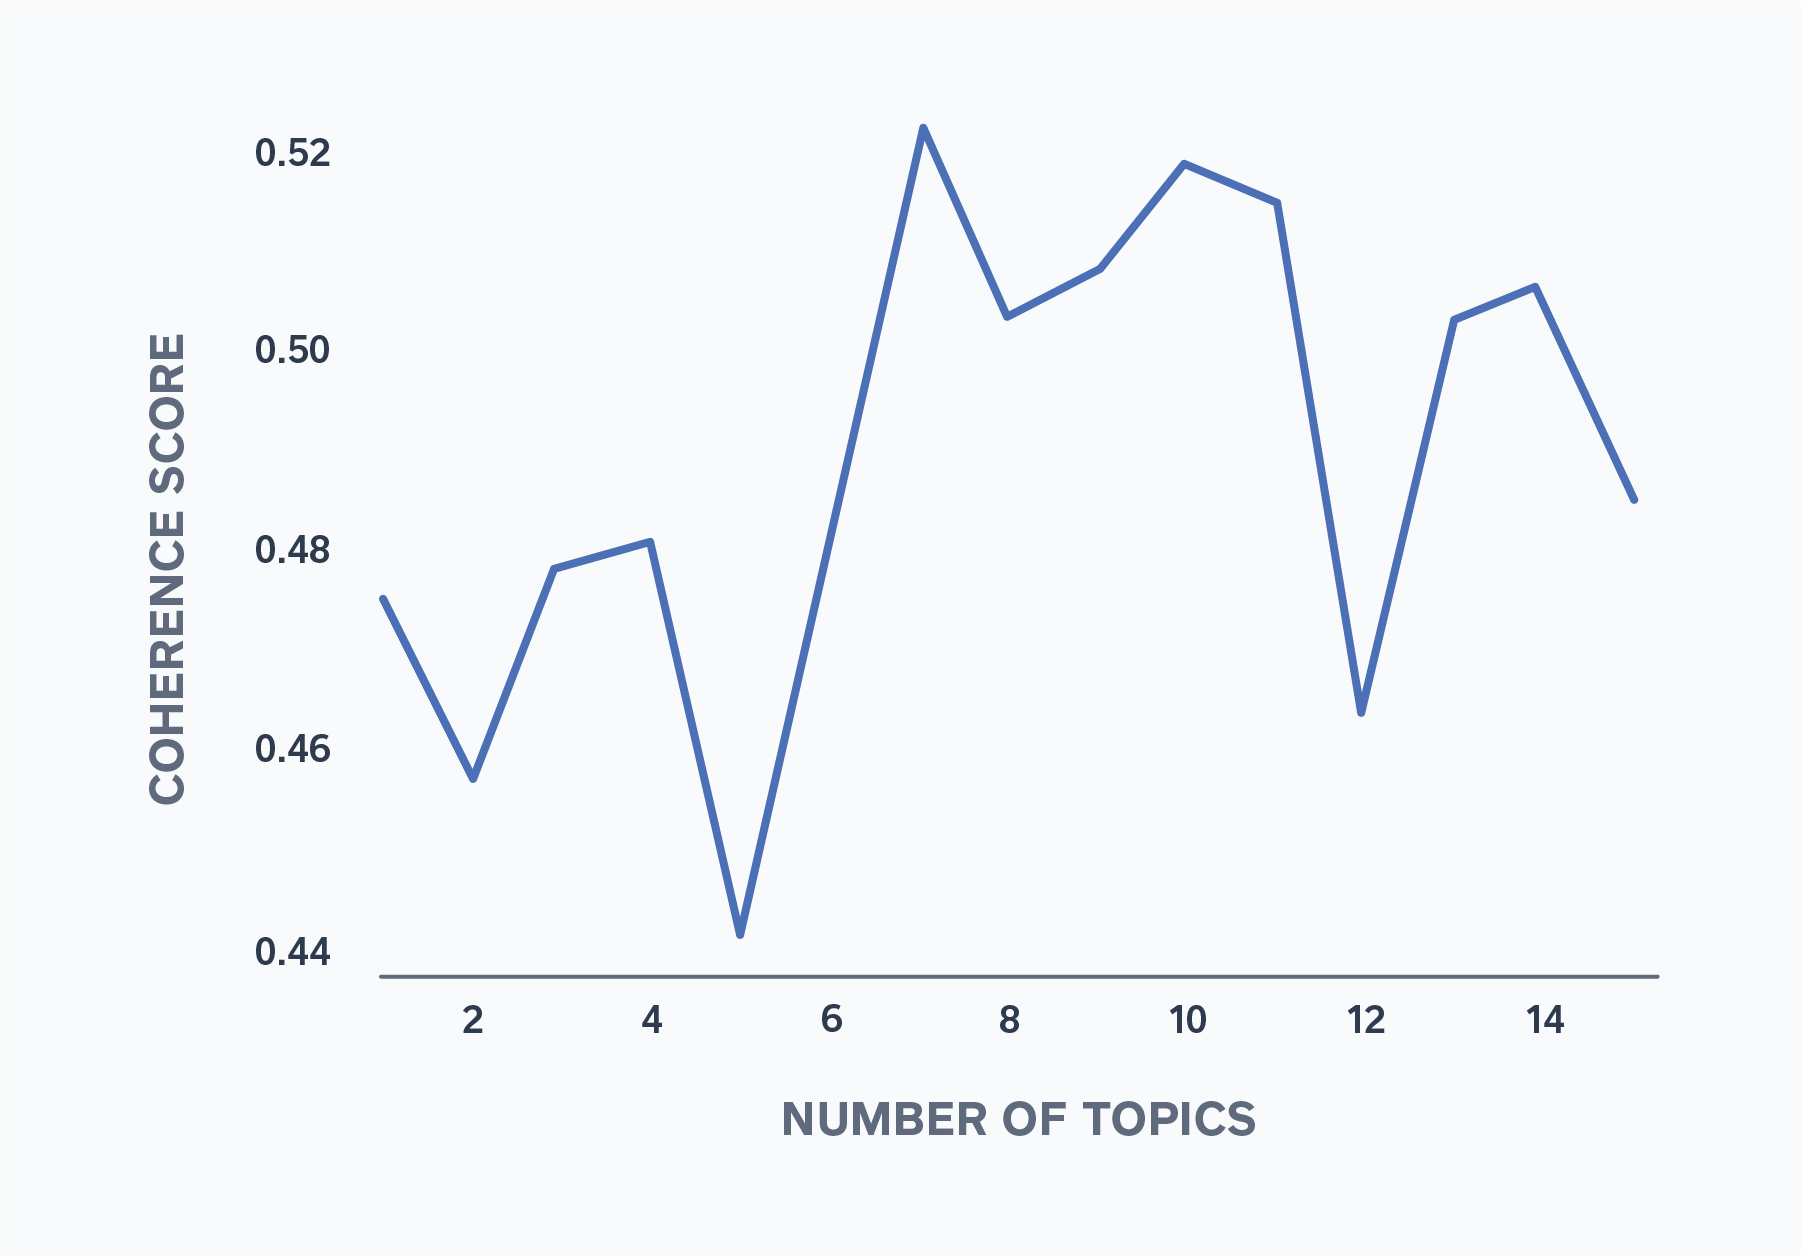 Figure 3: Coherence Score Across Number of Topics